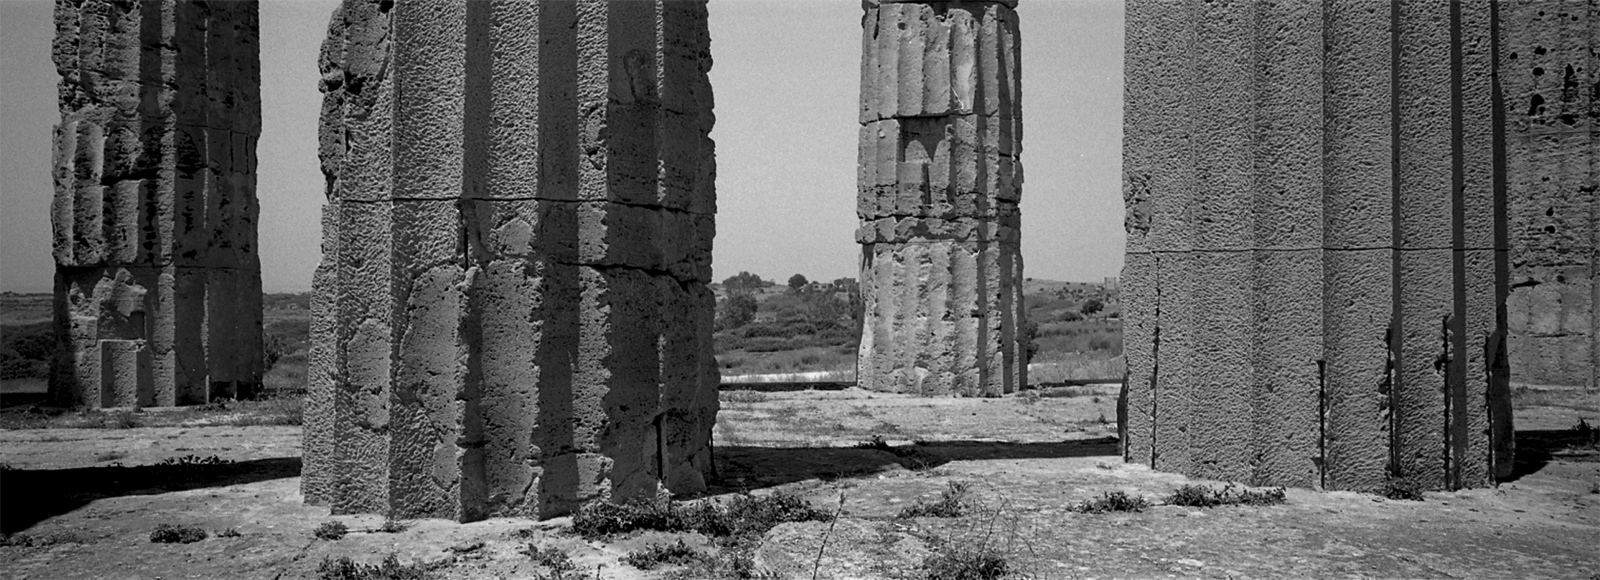 Art and Documentary Photography - Loading Archeologia_in_Sicilia___Fabio_Sgroi_031_.jpg